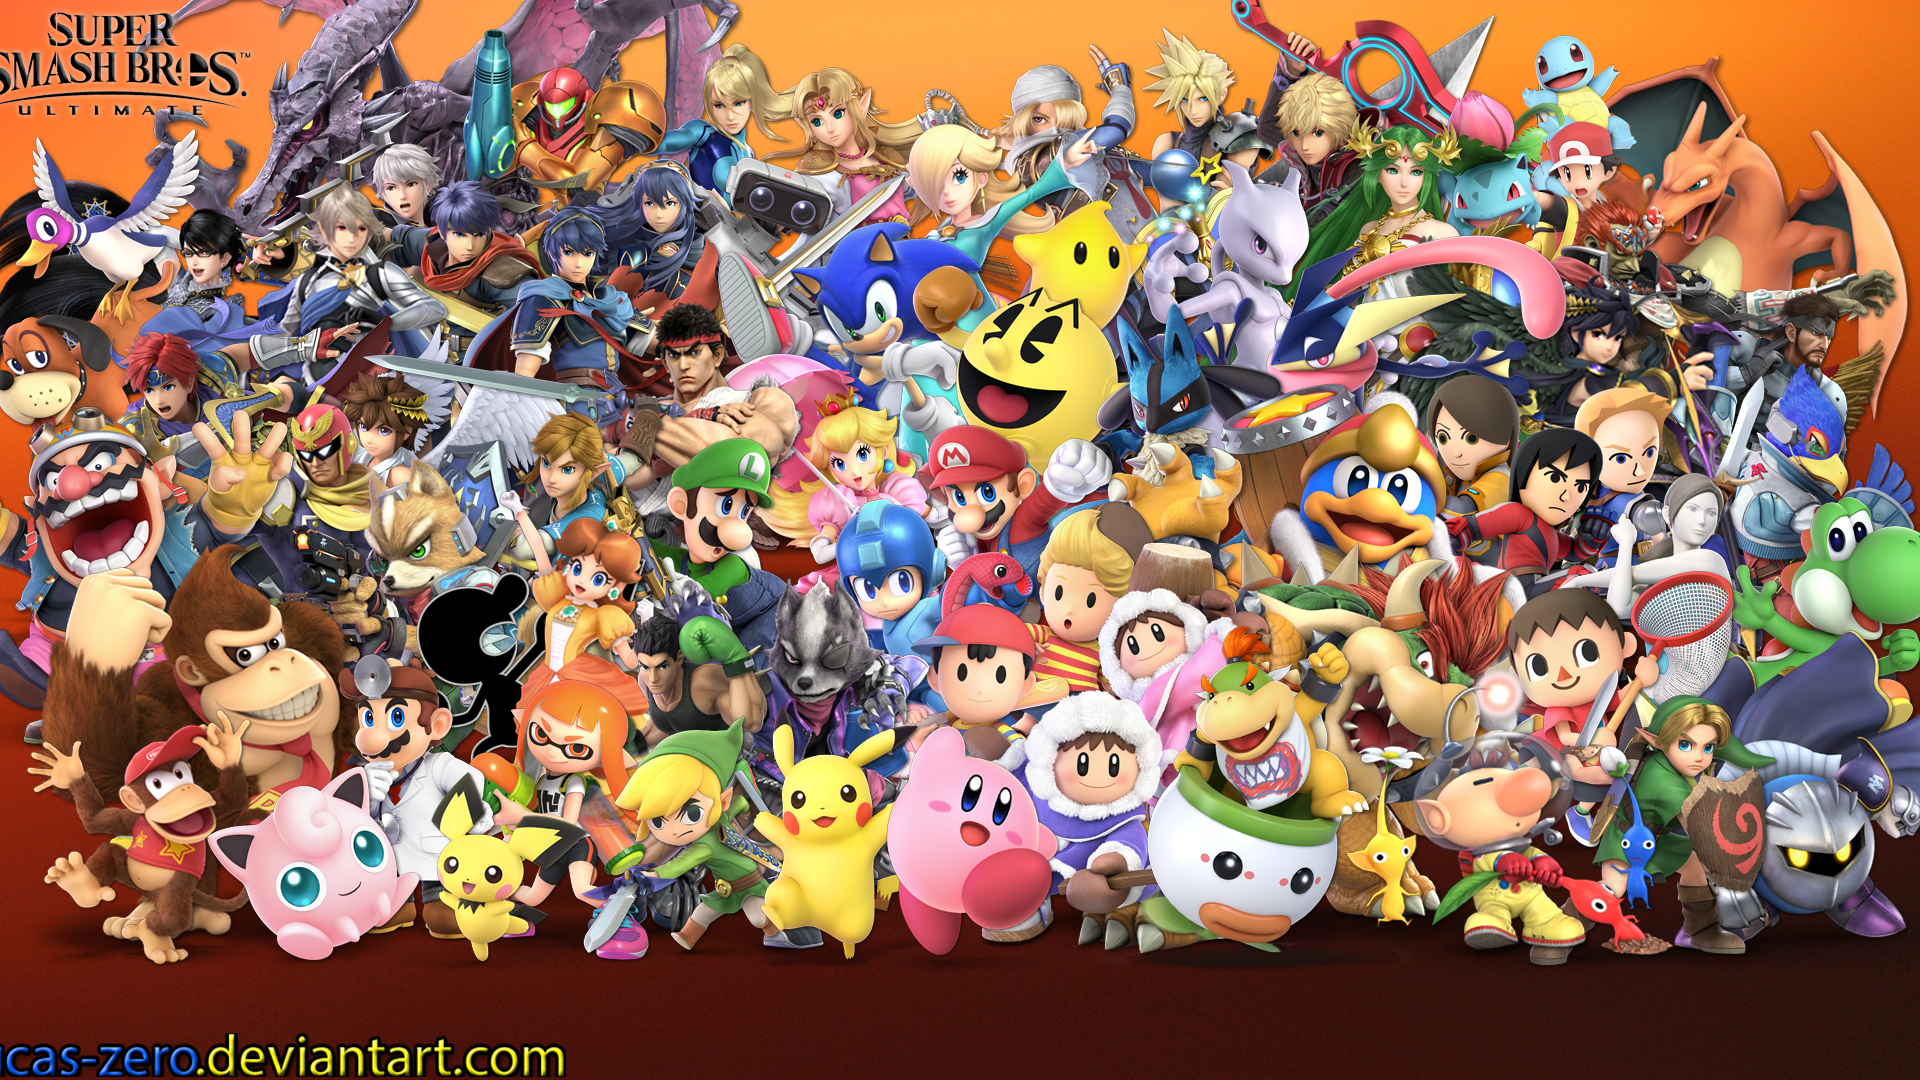 Free Download Super Smash Bros Ultimate Wallpaper By Lucas Zero On